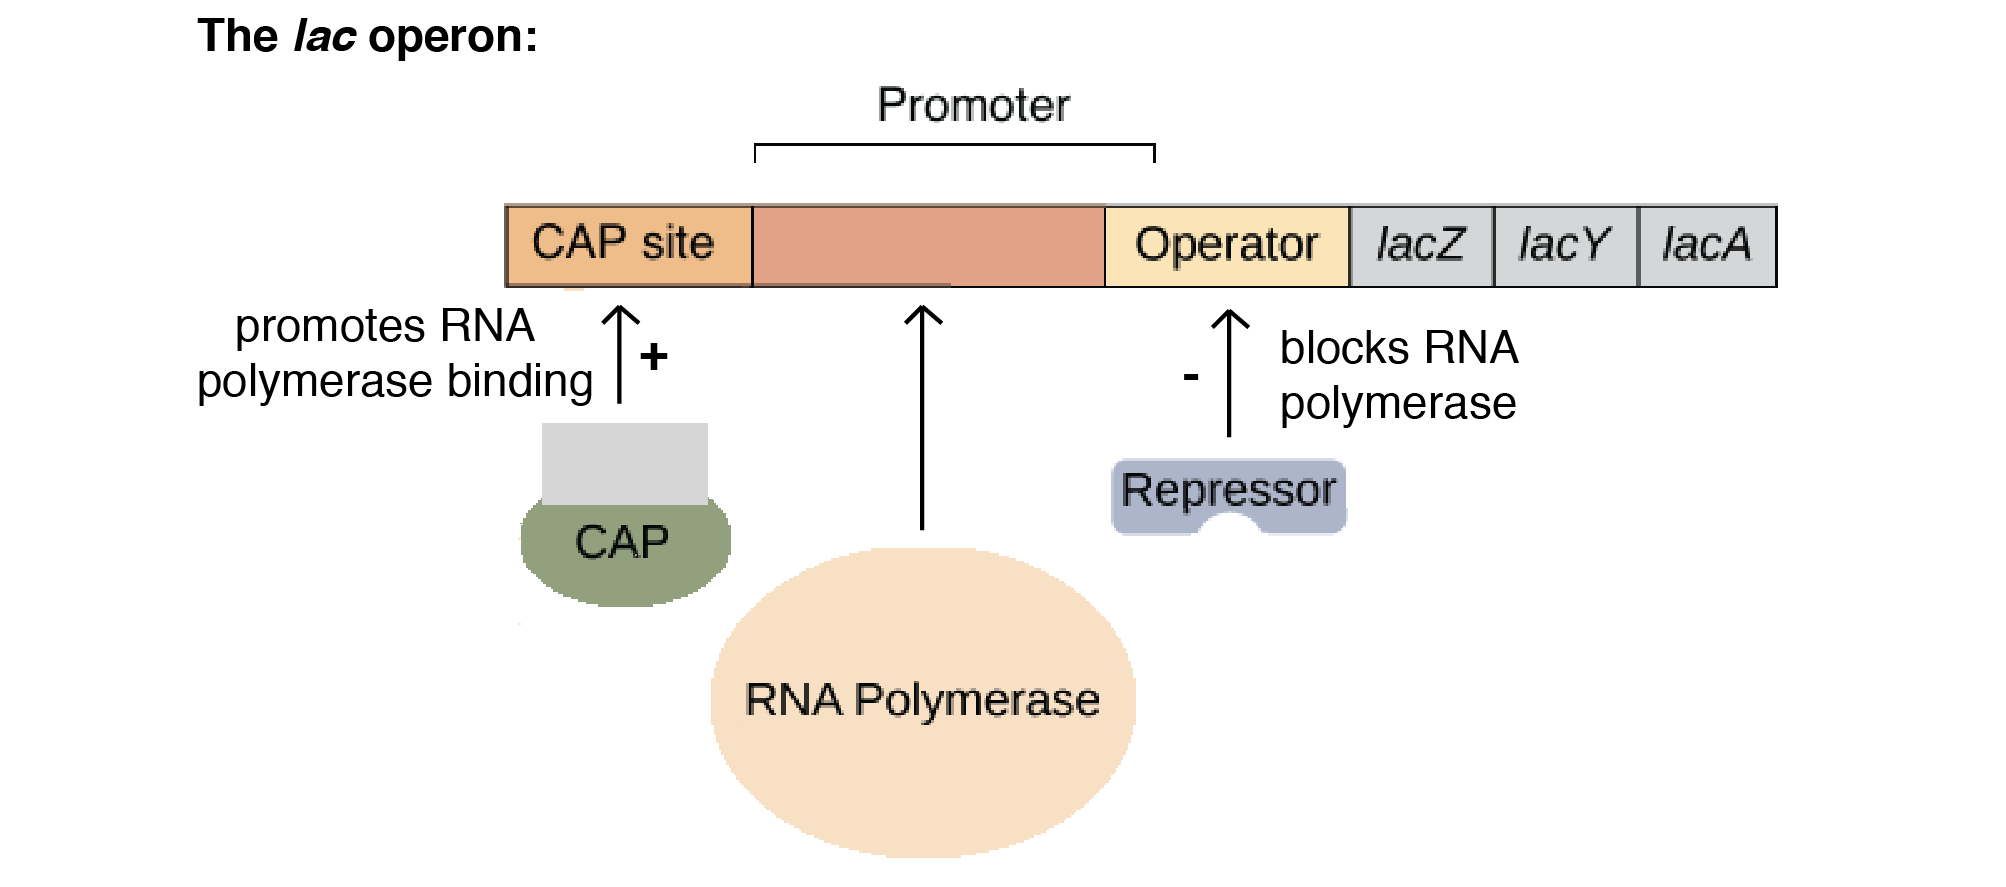 Structure of Lac Operon